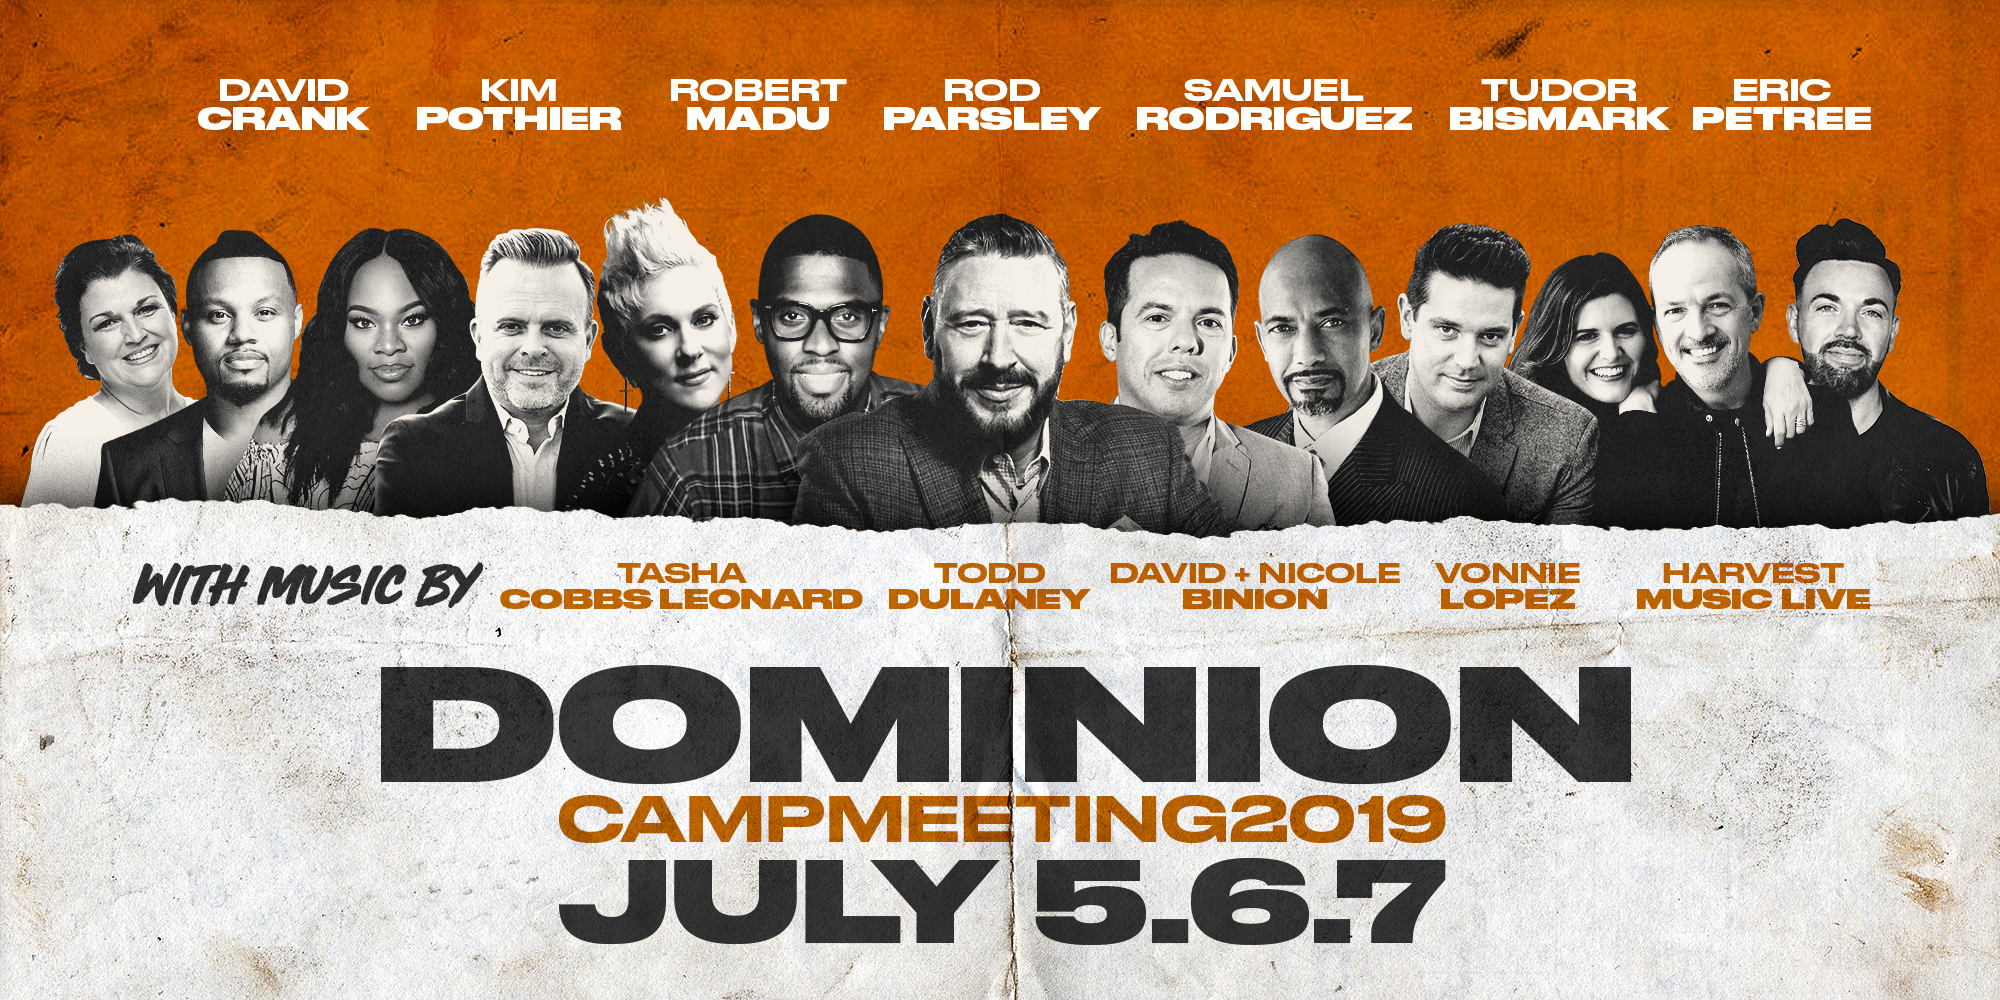 Dominion Camp Meeting 2019